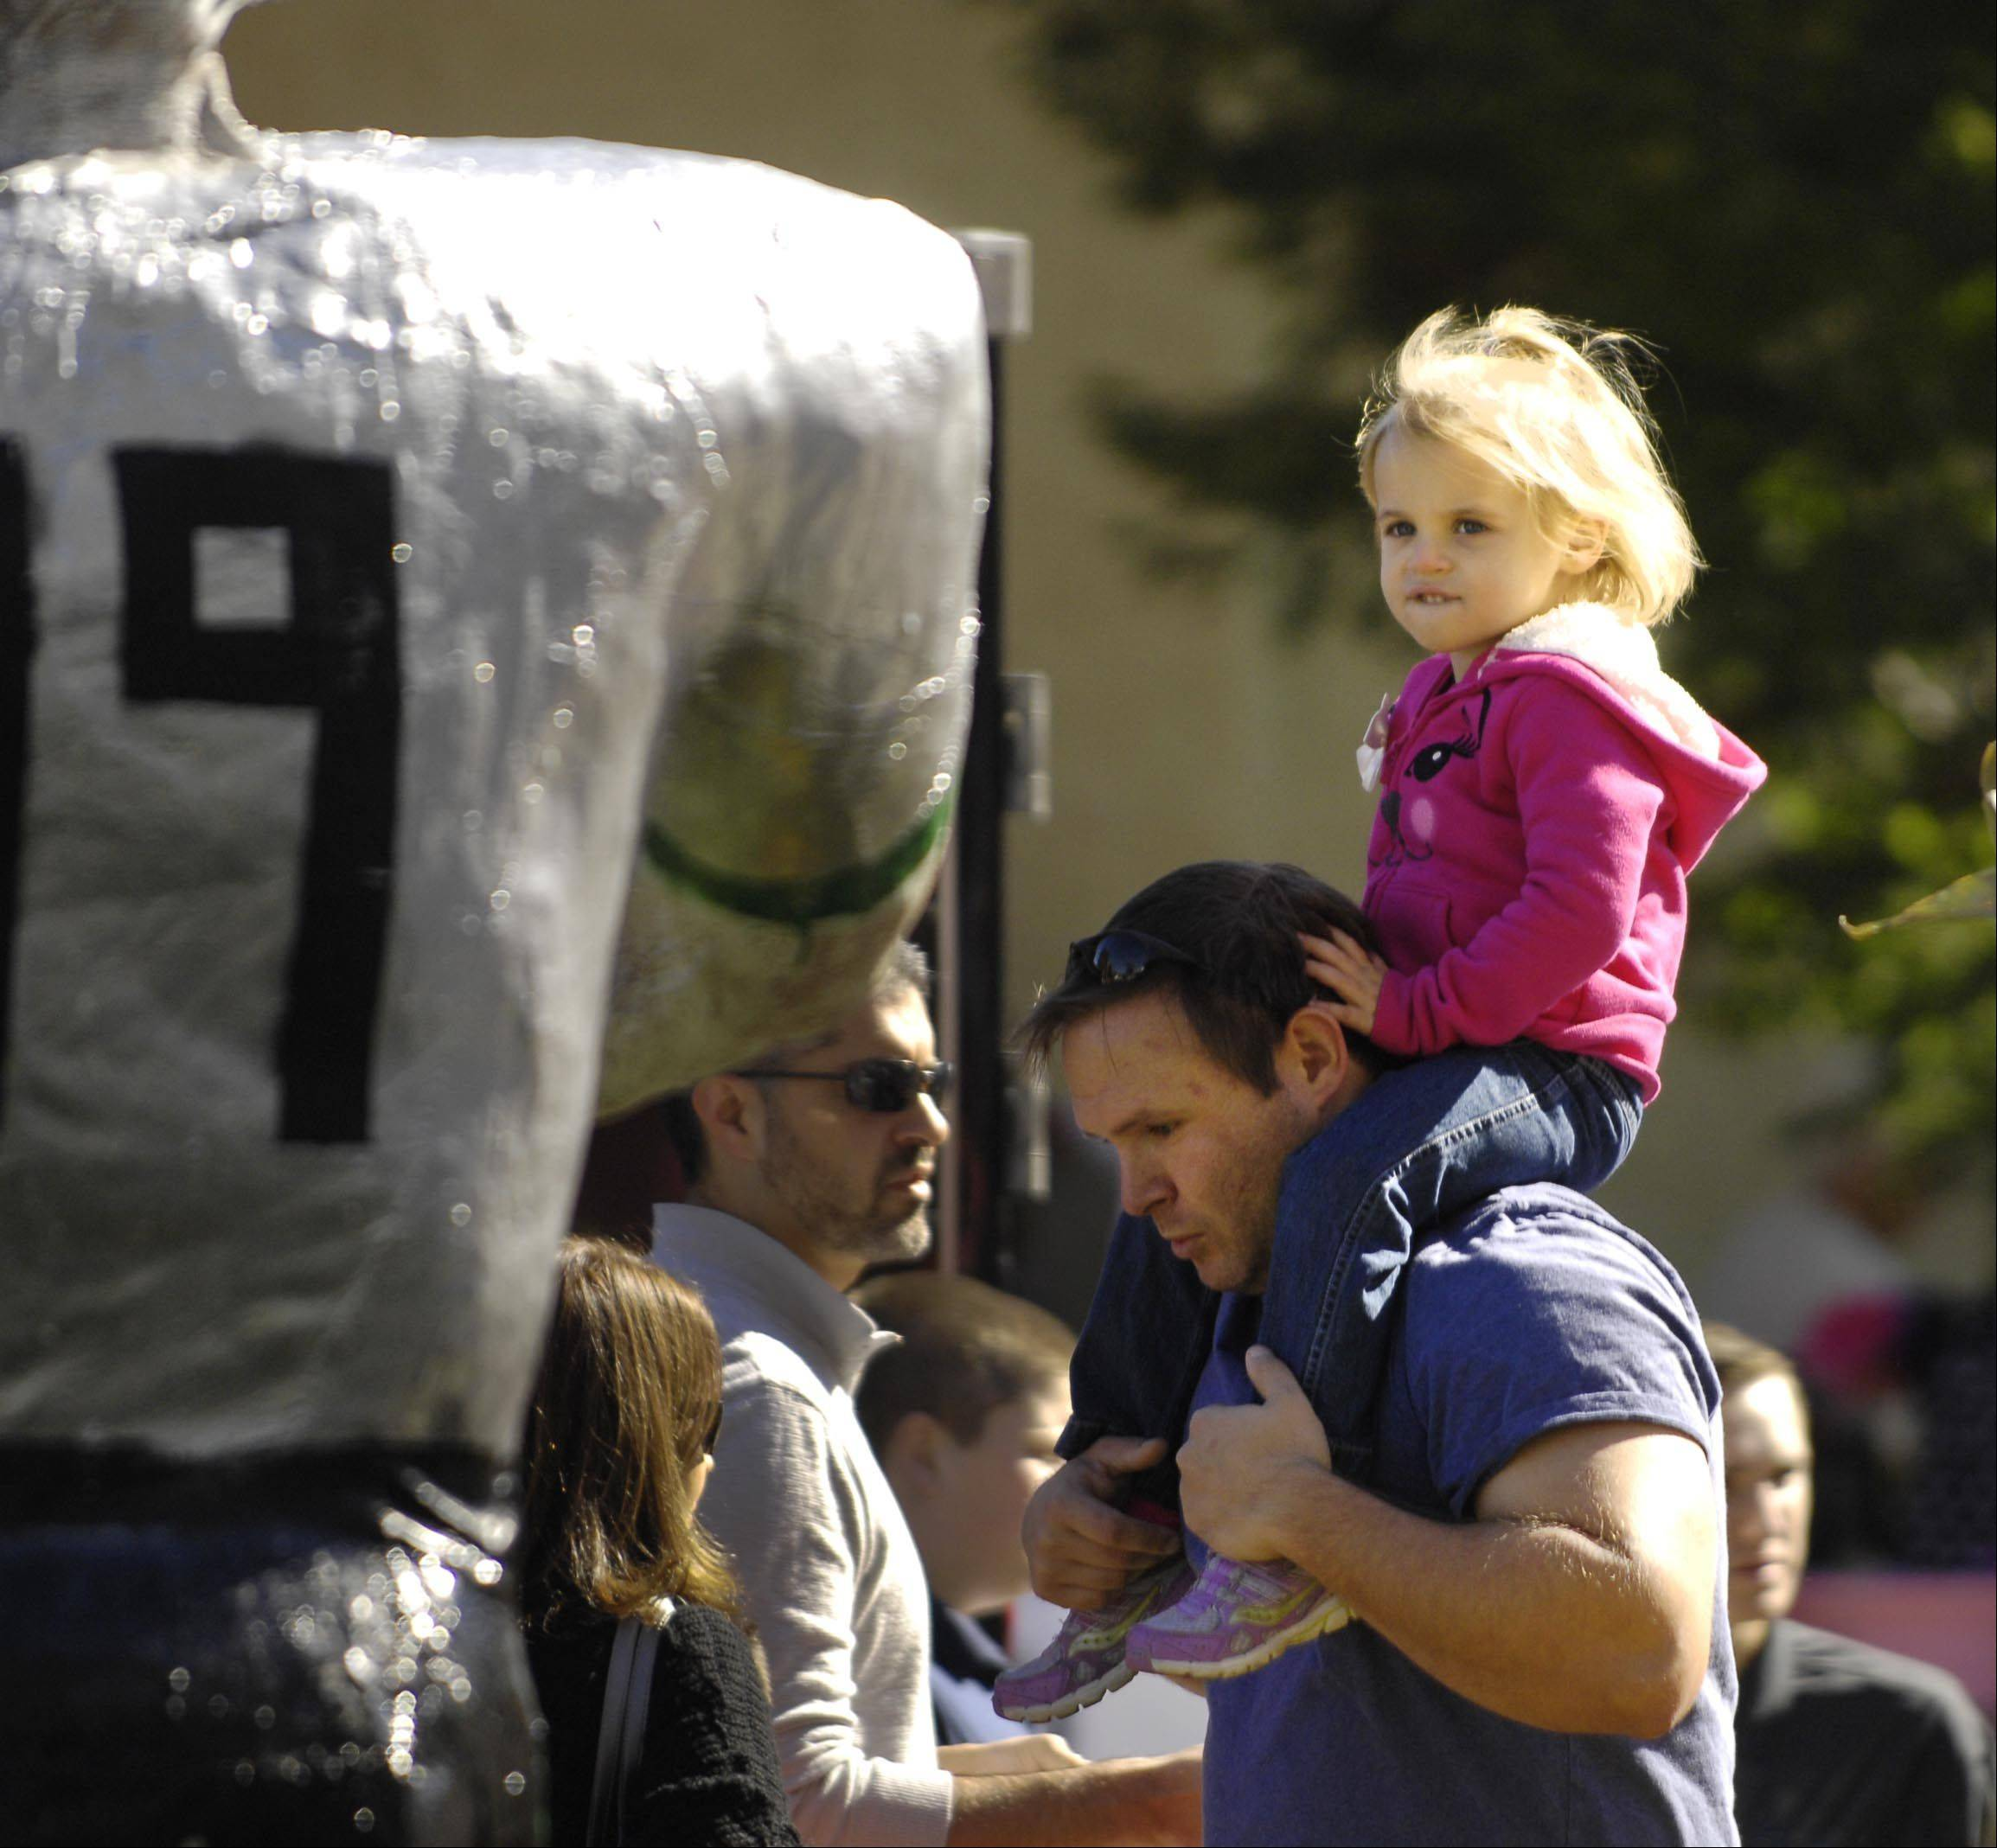 Ruth Jezioro, 3, looks at a large football player scarecrow as she rides the shoulders of her uncle Dave Delach of Batavia on Sunday at the 28th annual St. Charles Scarecrow Festival.